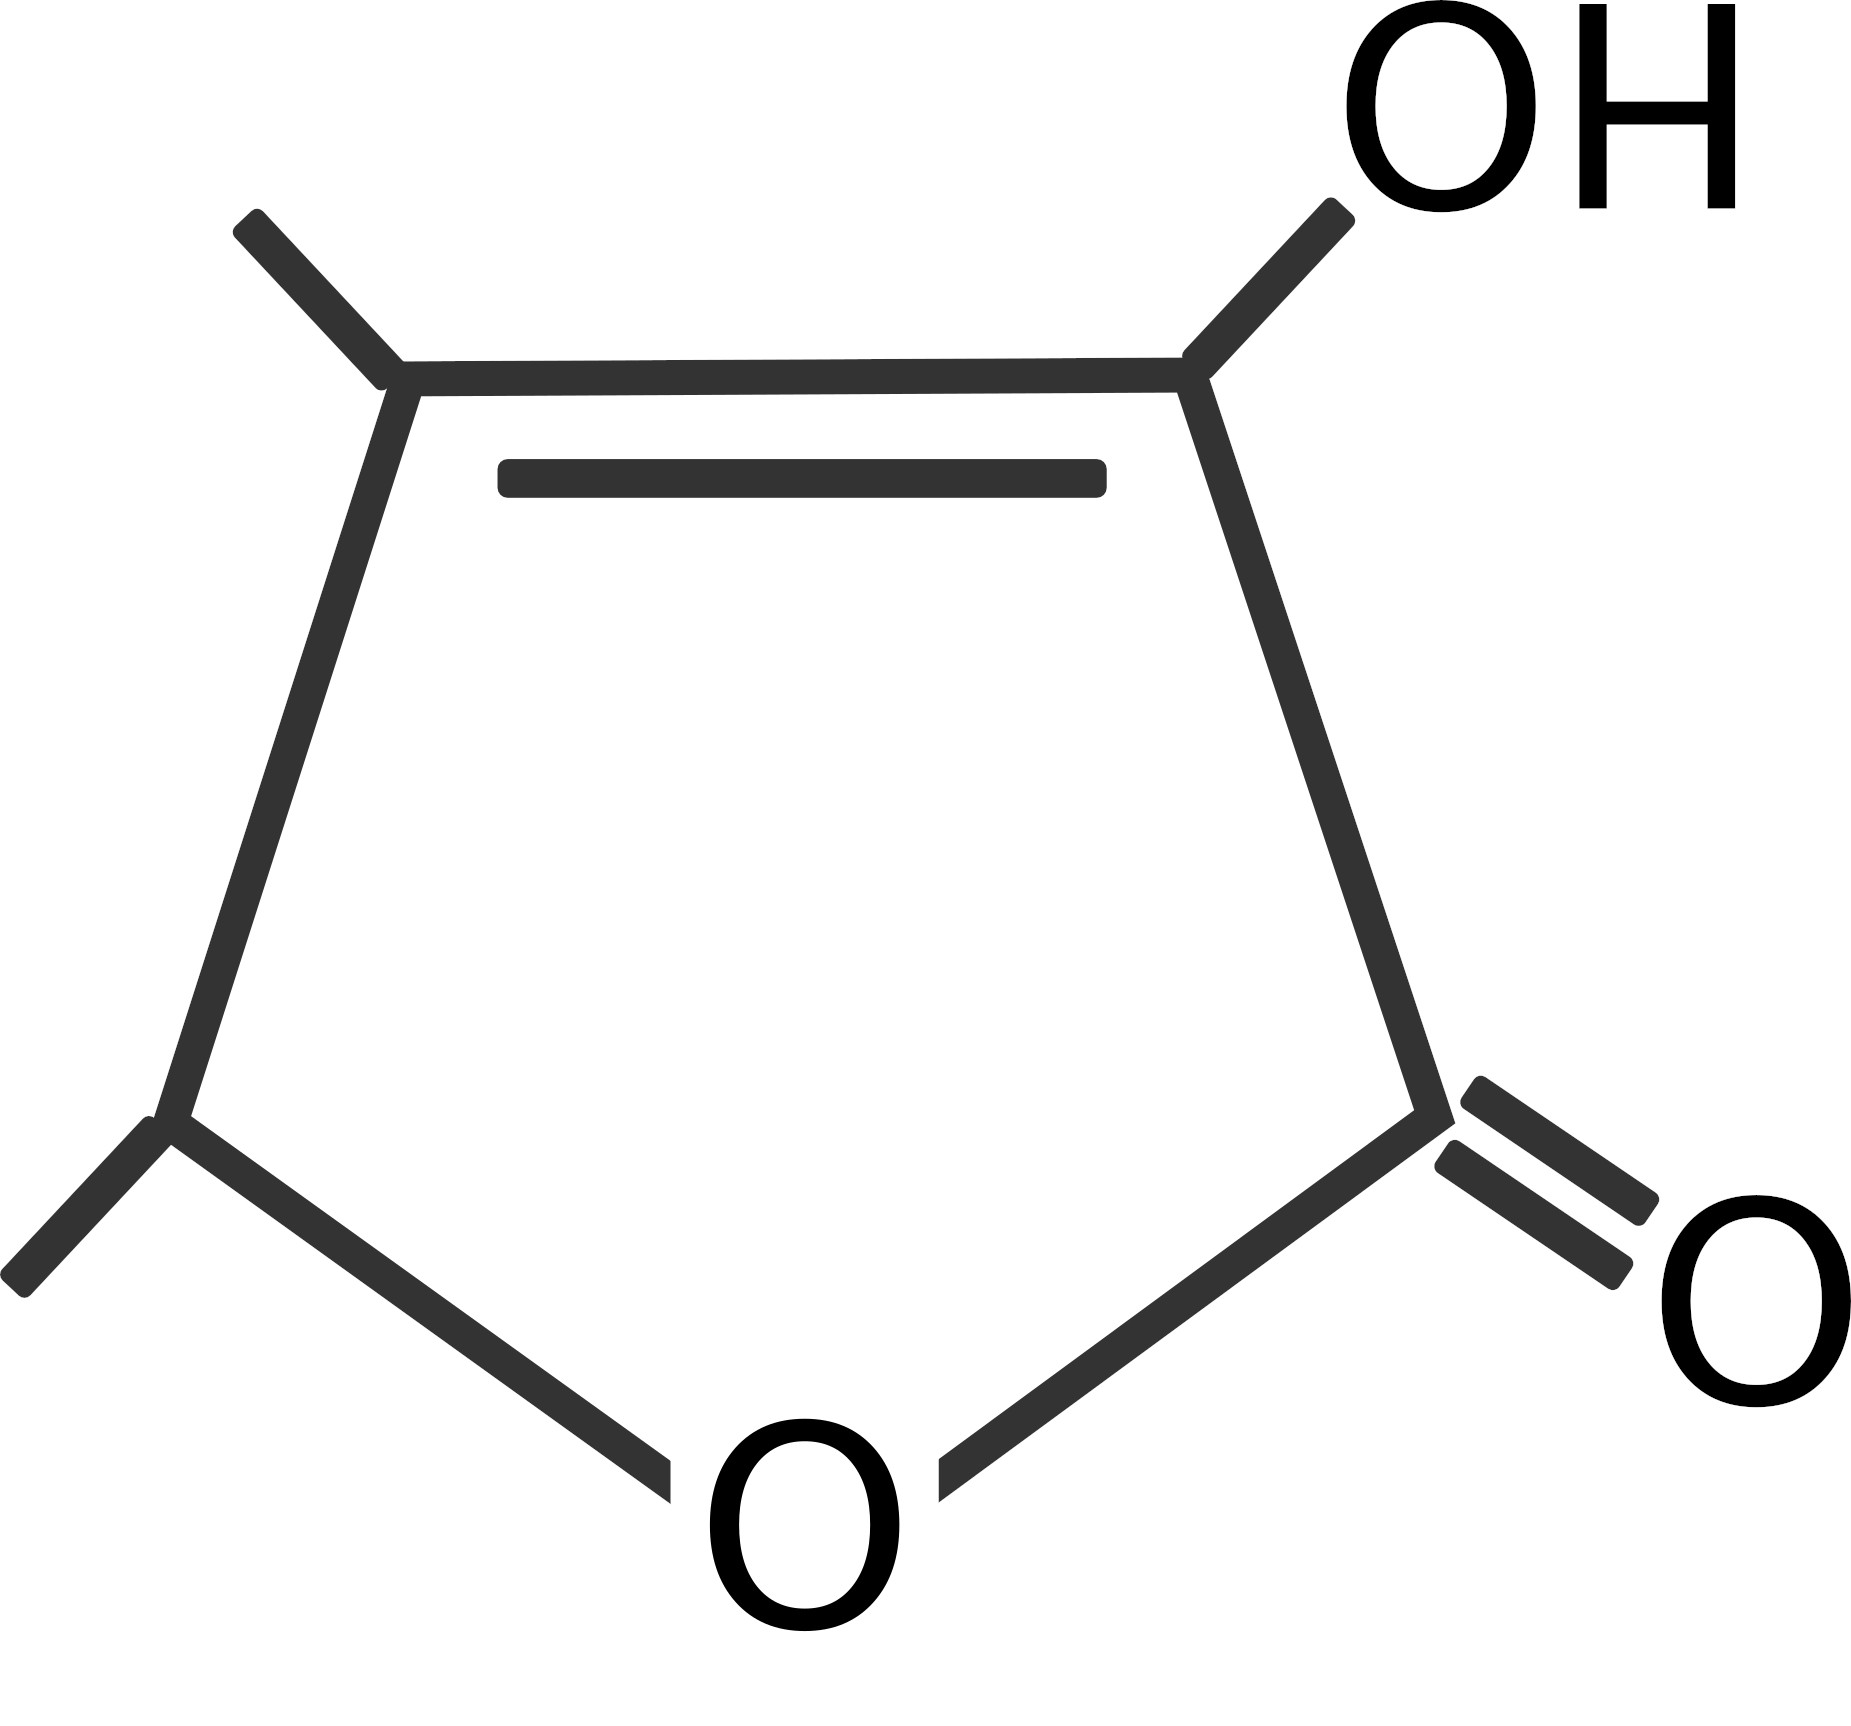 The soloton's molecule